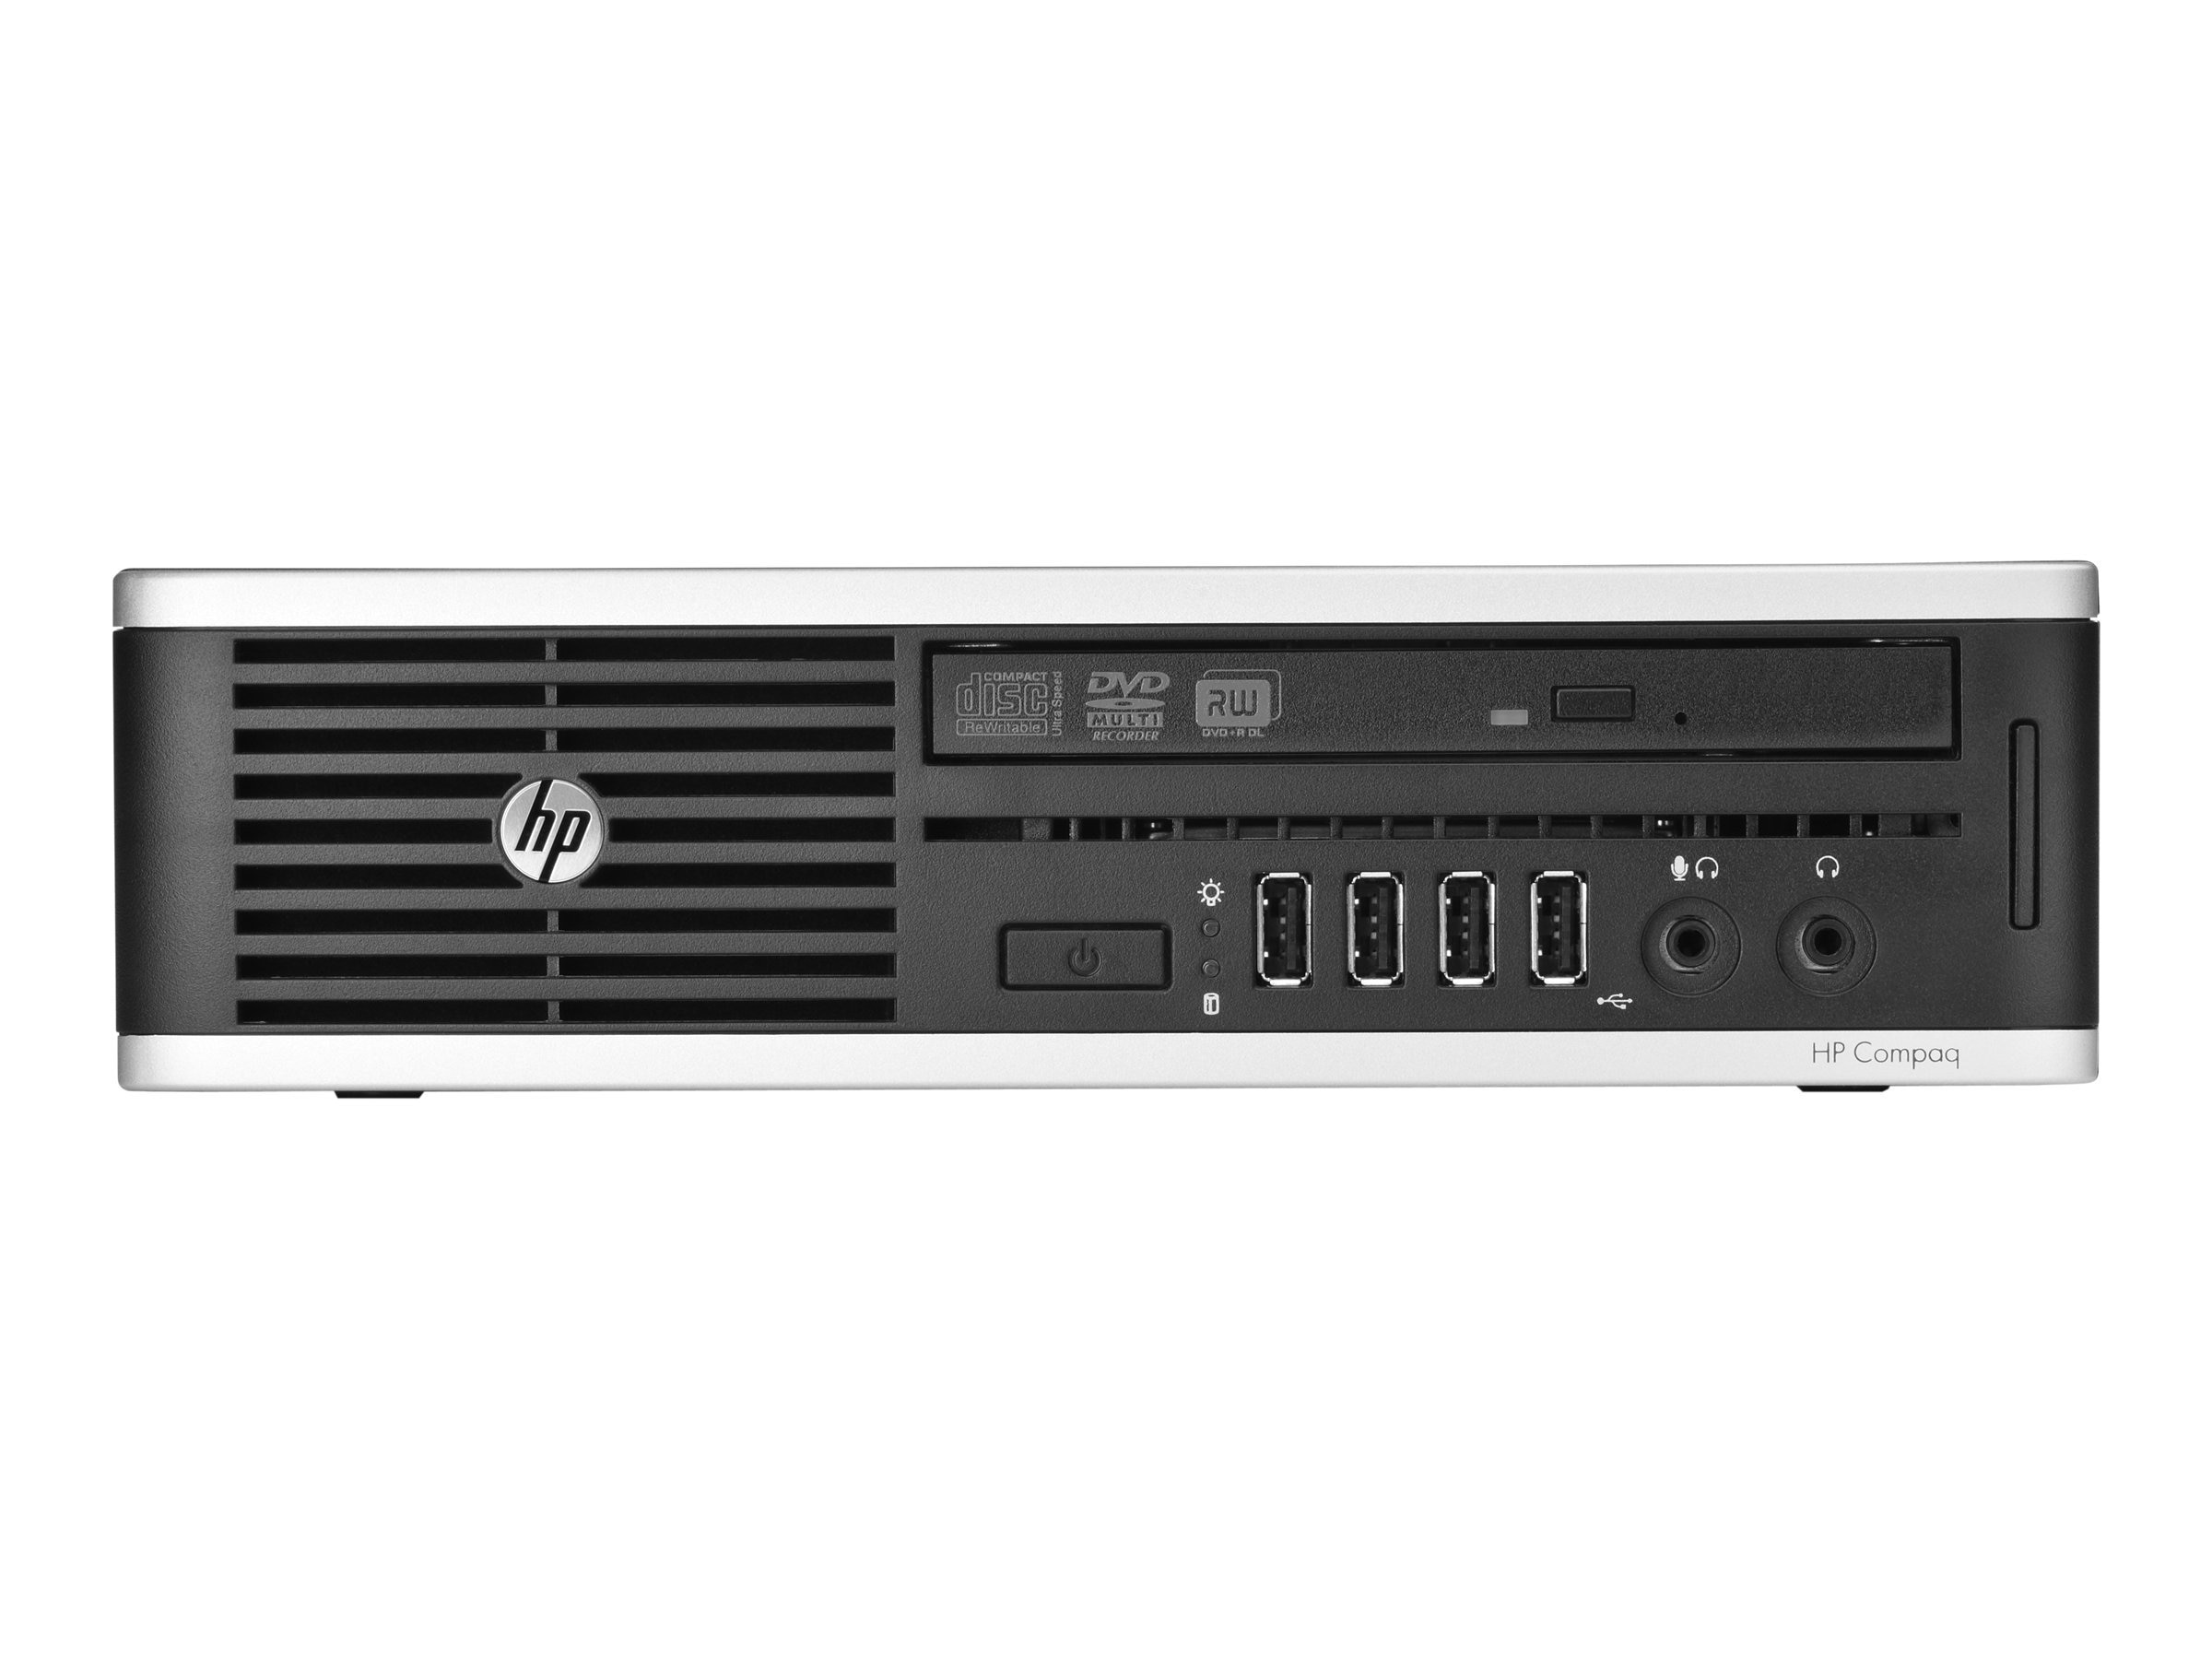 HP SignagePlayer mp8200 Core i5-2400s 2.5GHz 4GB 160GB abgn GNIC WES7, XZ954UA#ABA